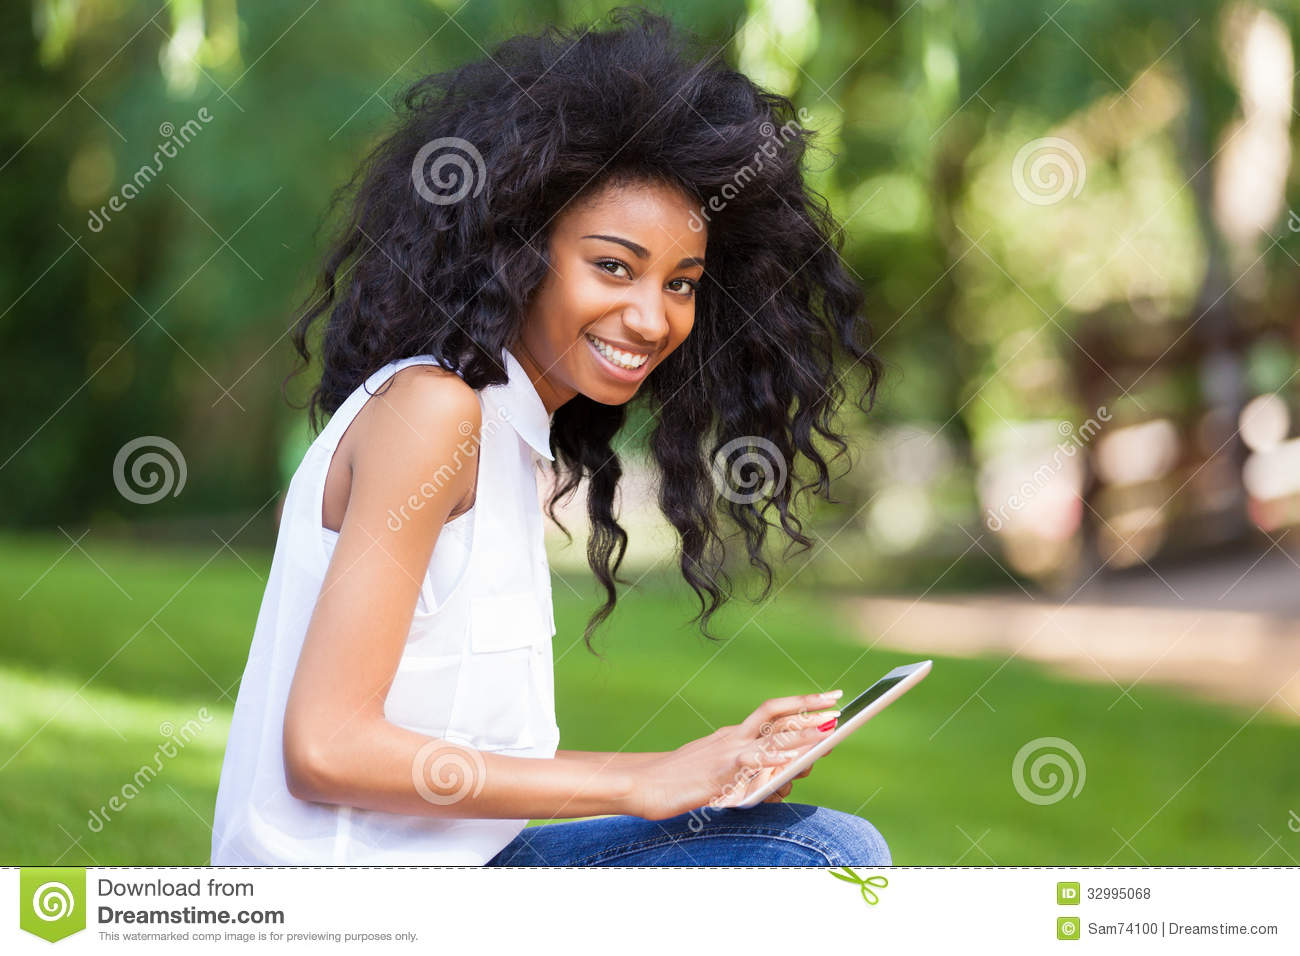 Outdoor Portrait Of A Teenage Black Girl Using A Tactile